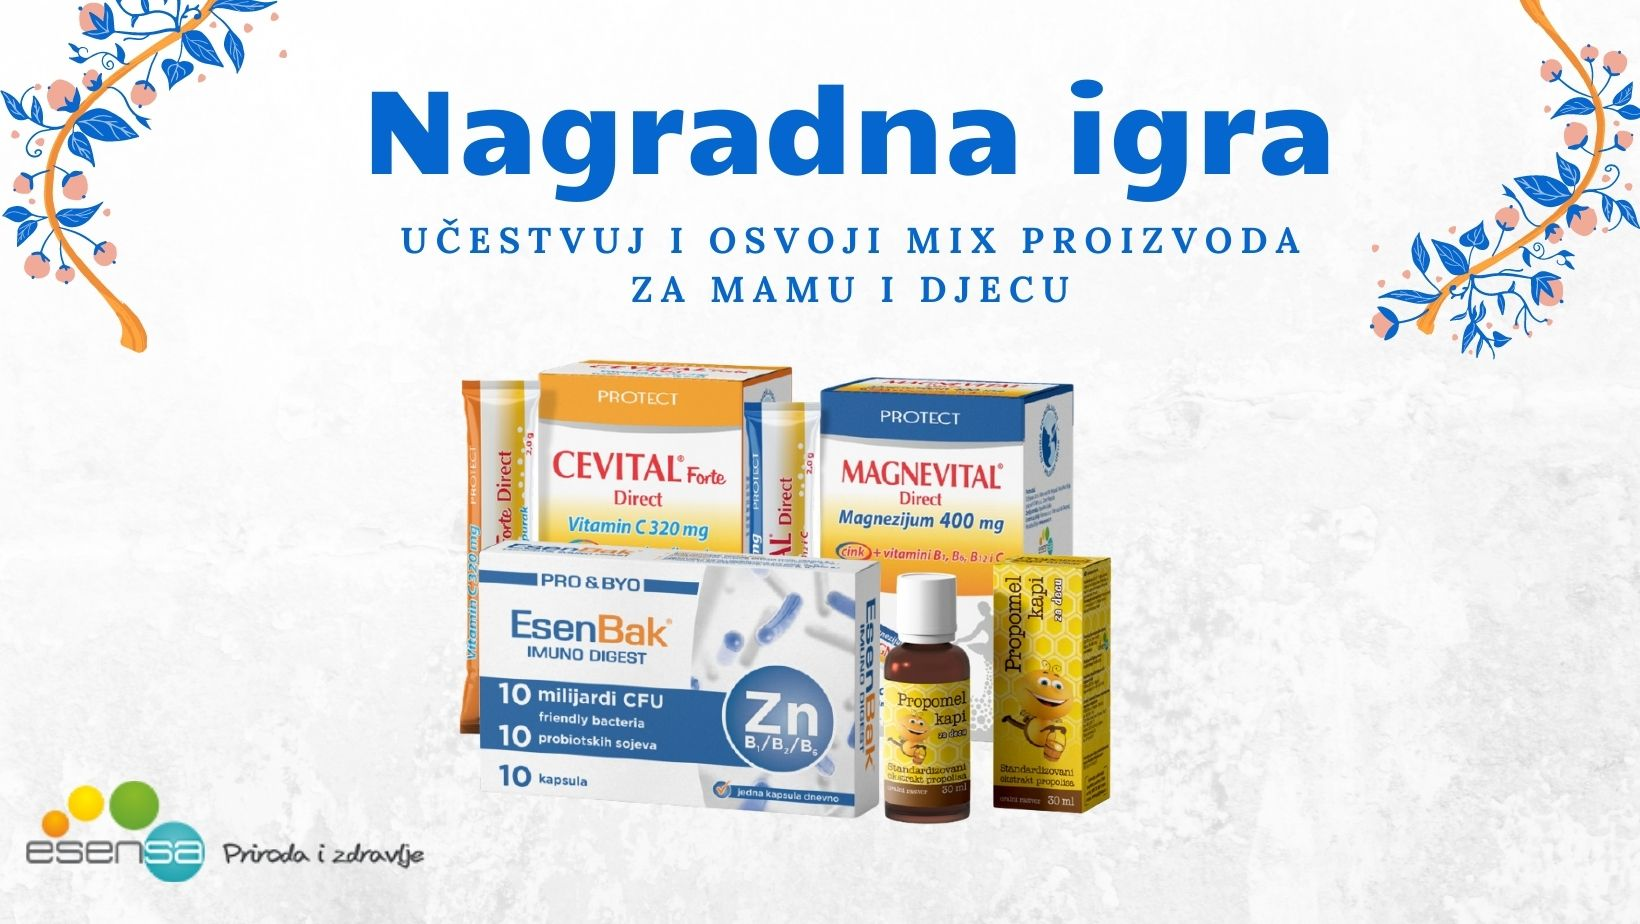 Nagradna igra-Esensa mix